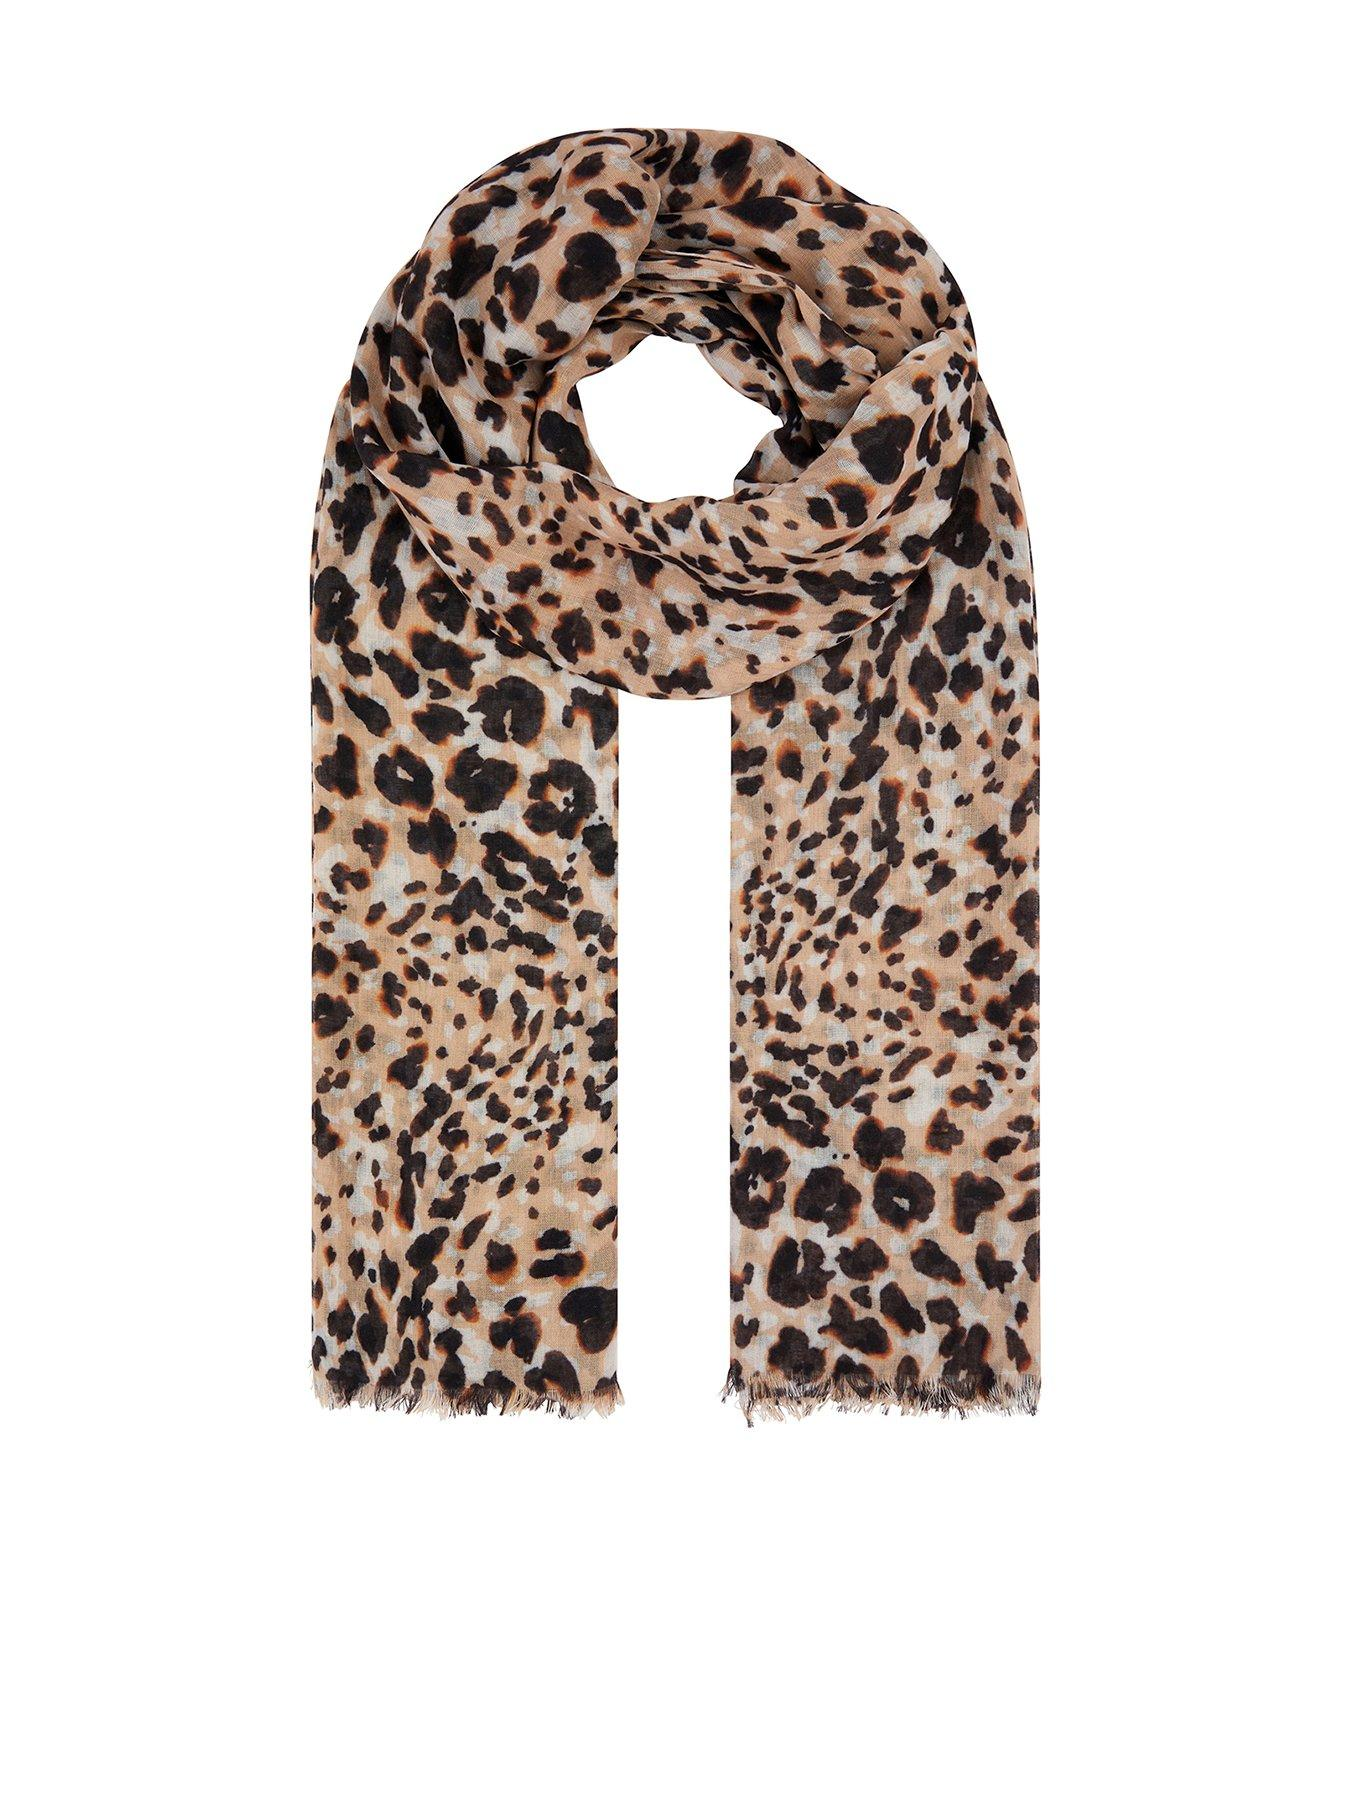 Soft Polyester Silk Unique Scarves For Women Fashion Print Kitchen Cooking Equipment Womens Hair Scarf Light Scarves Hair Accessories Scarf Multiple Ways Of Wearing Daily Decor